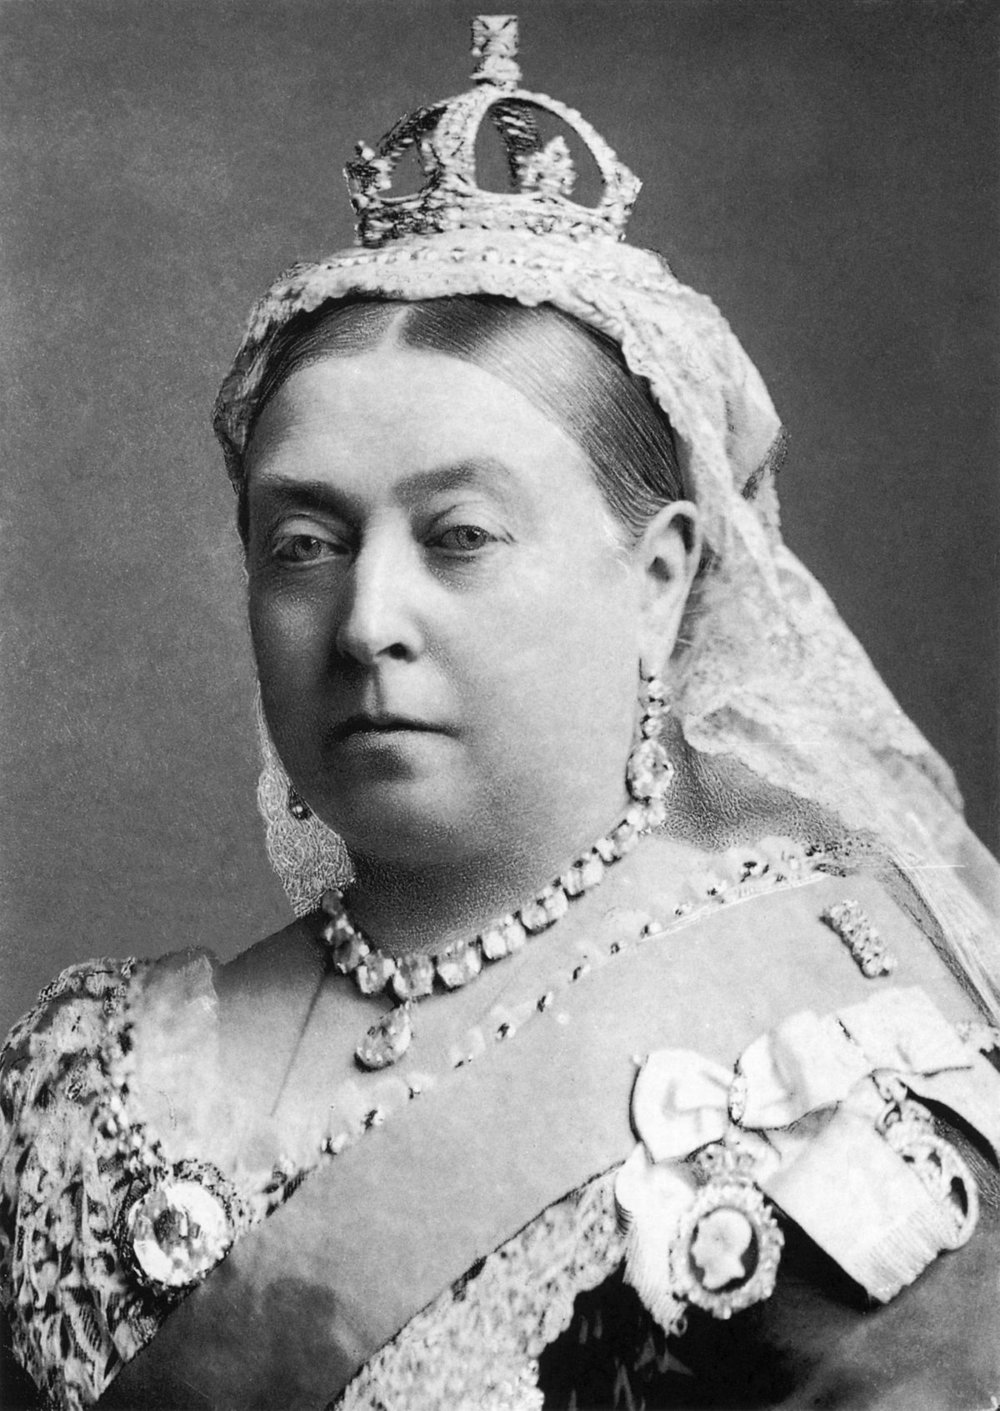 Victoria Day is a Canadian statutory holiday and a local public holiday in parts of Scotland celebrated on the last Monday before or on 24 May (Queen Victoria's birthday).